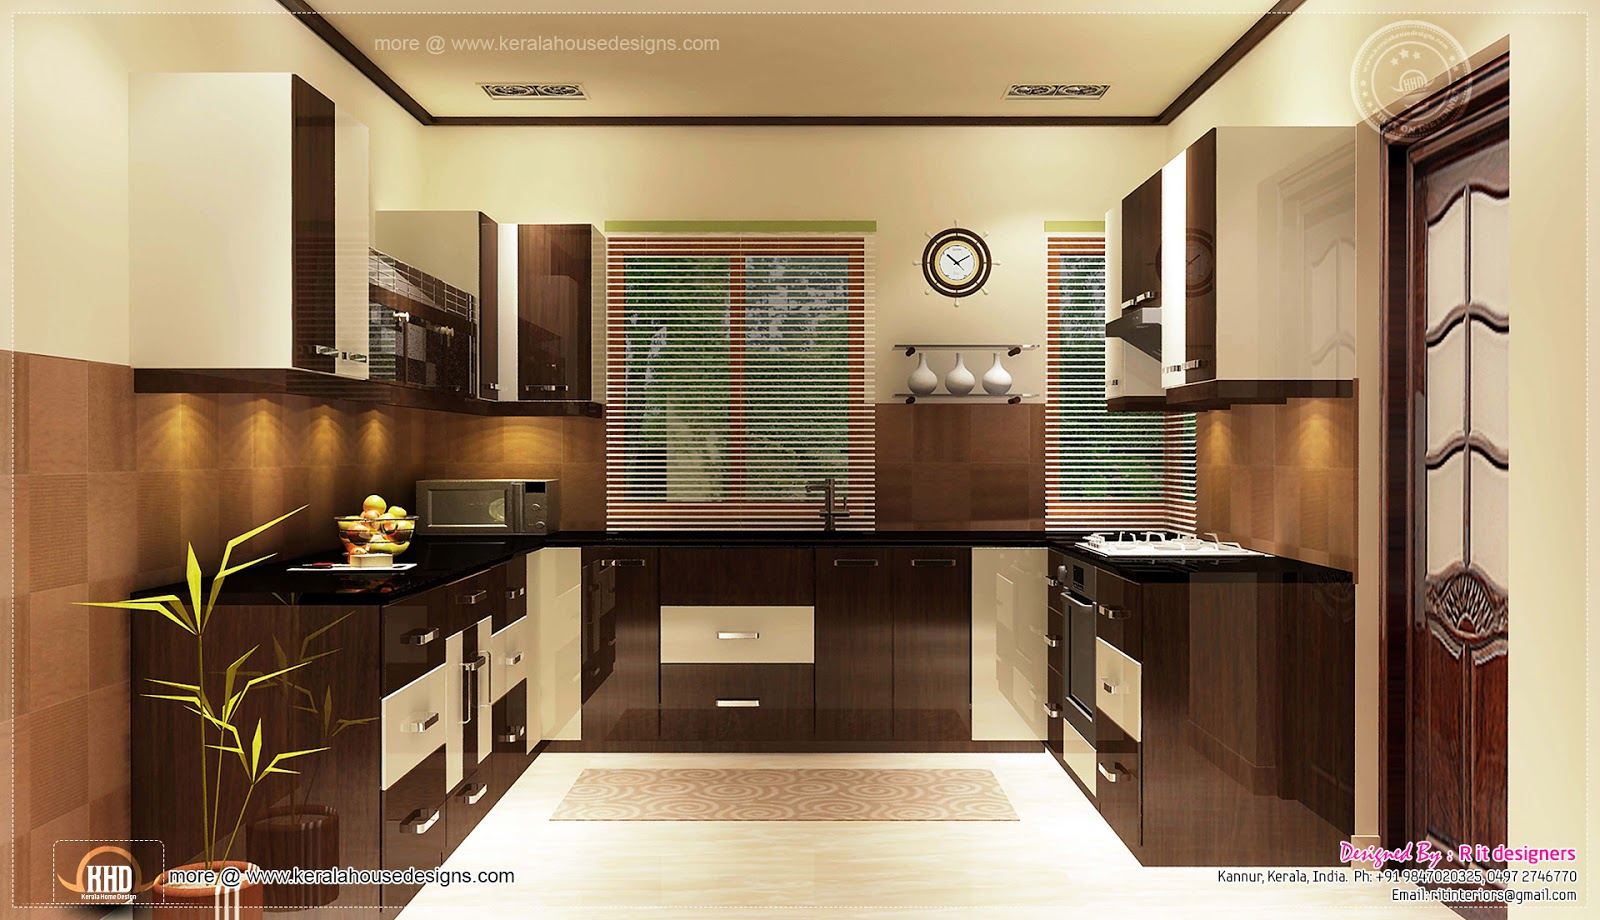 Home interior designs by rit designers kerala home for Interior designs for homes pictures